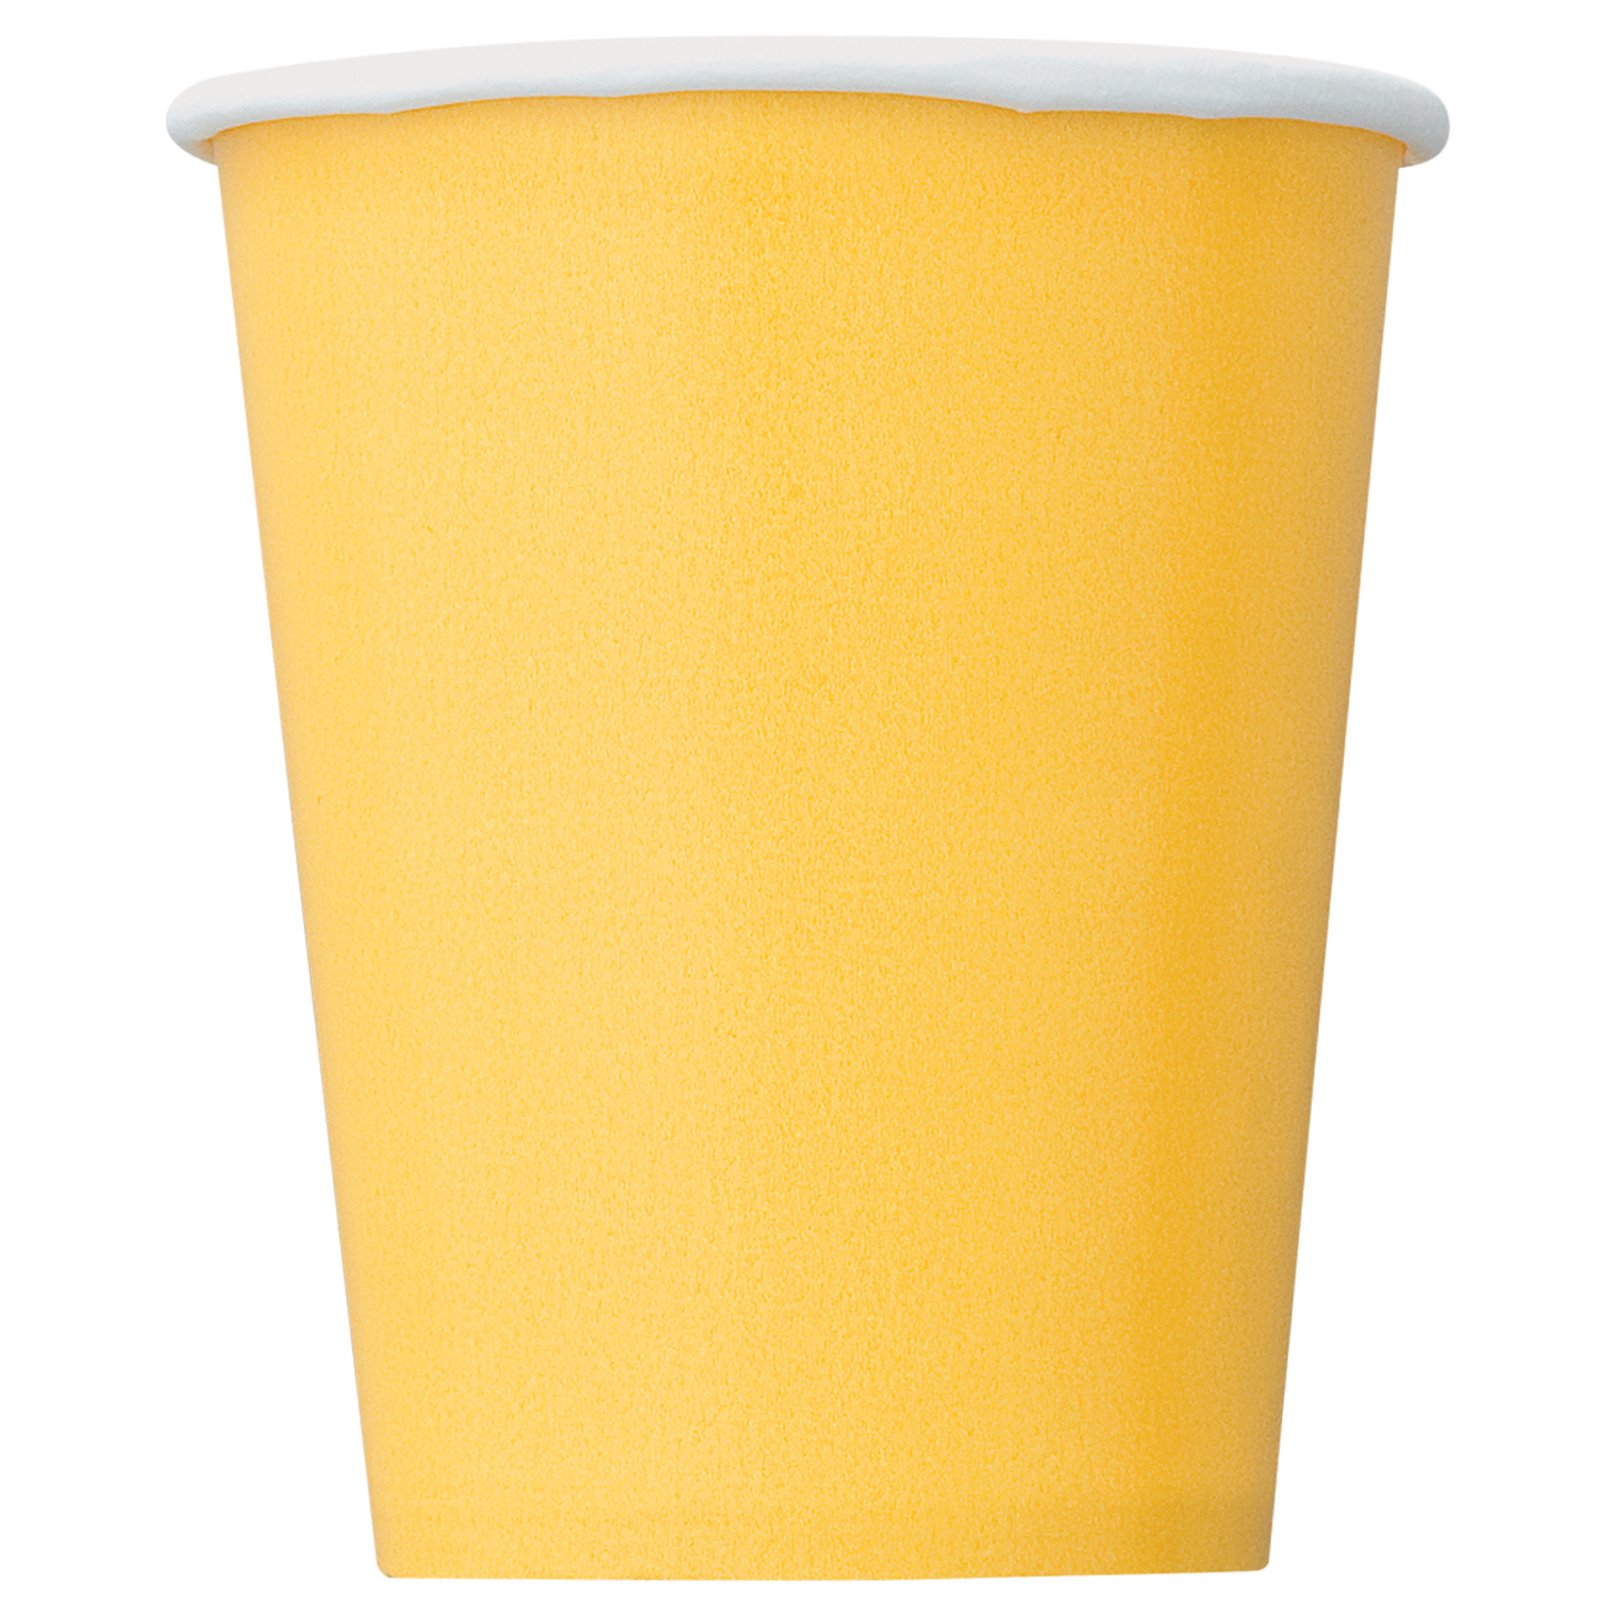 Sunflower Yellow 9 oz. Cups (8 count)